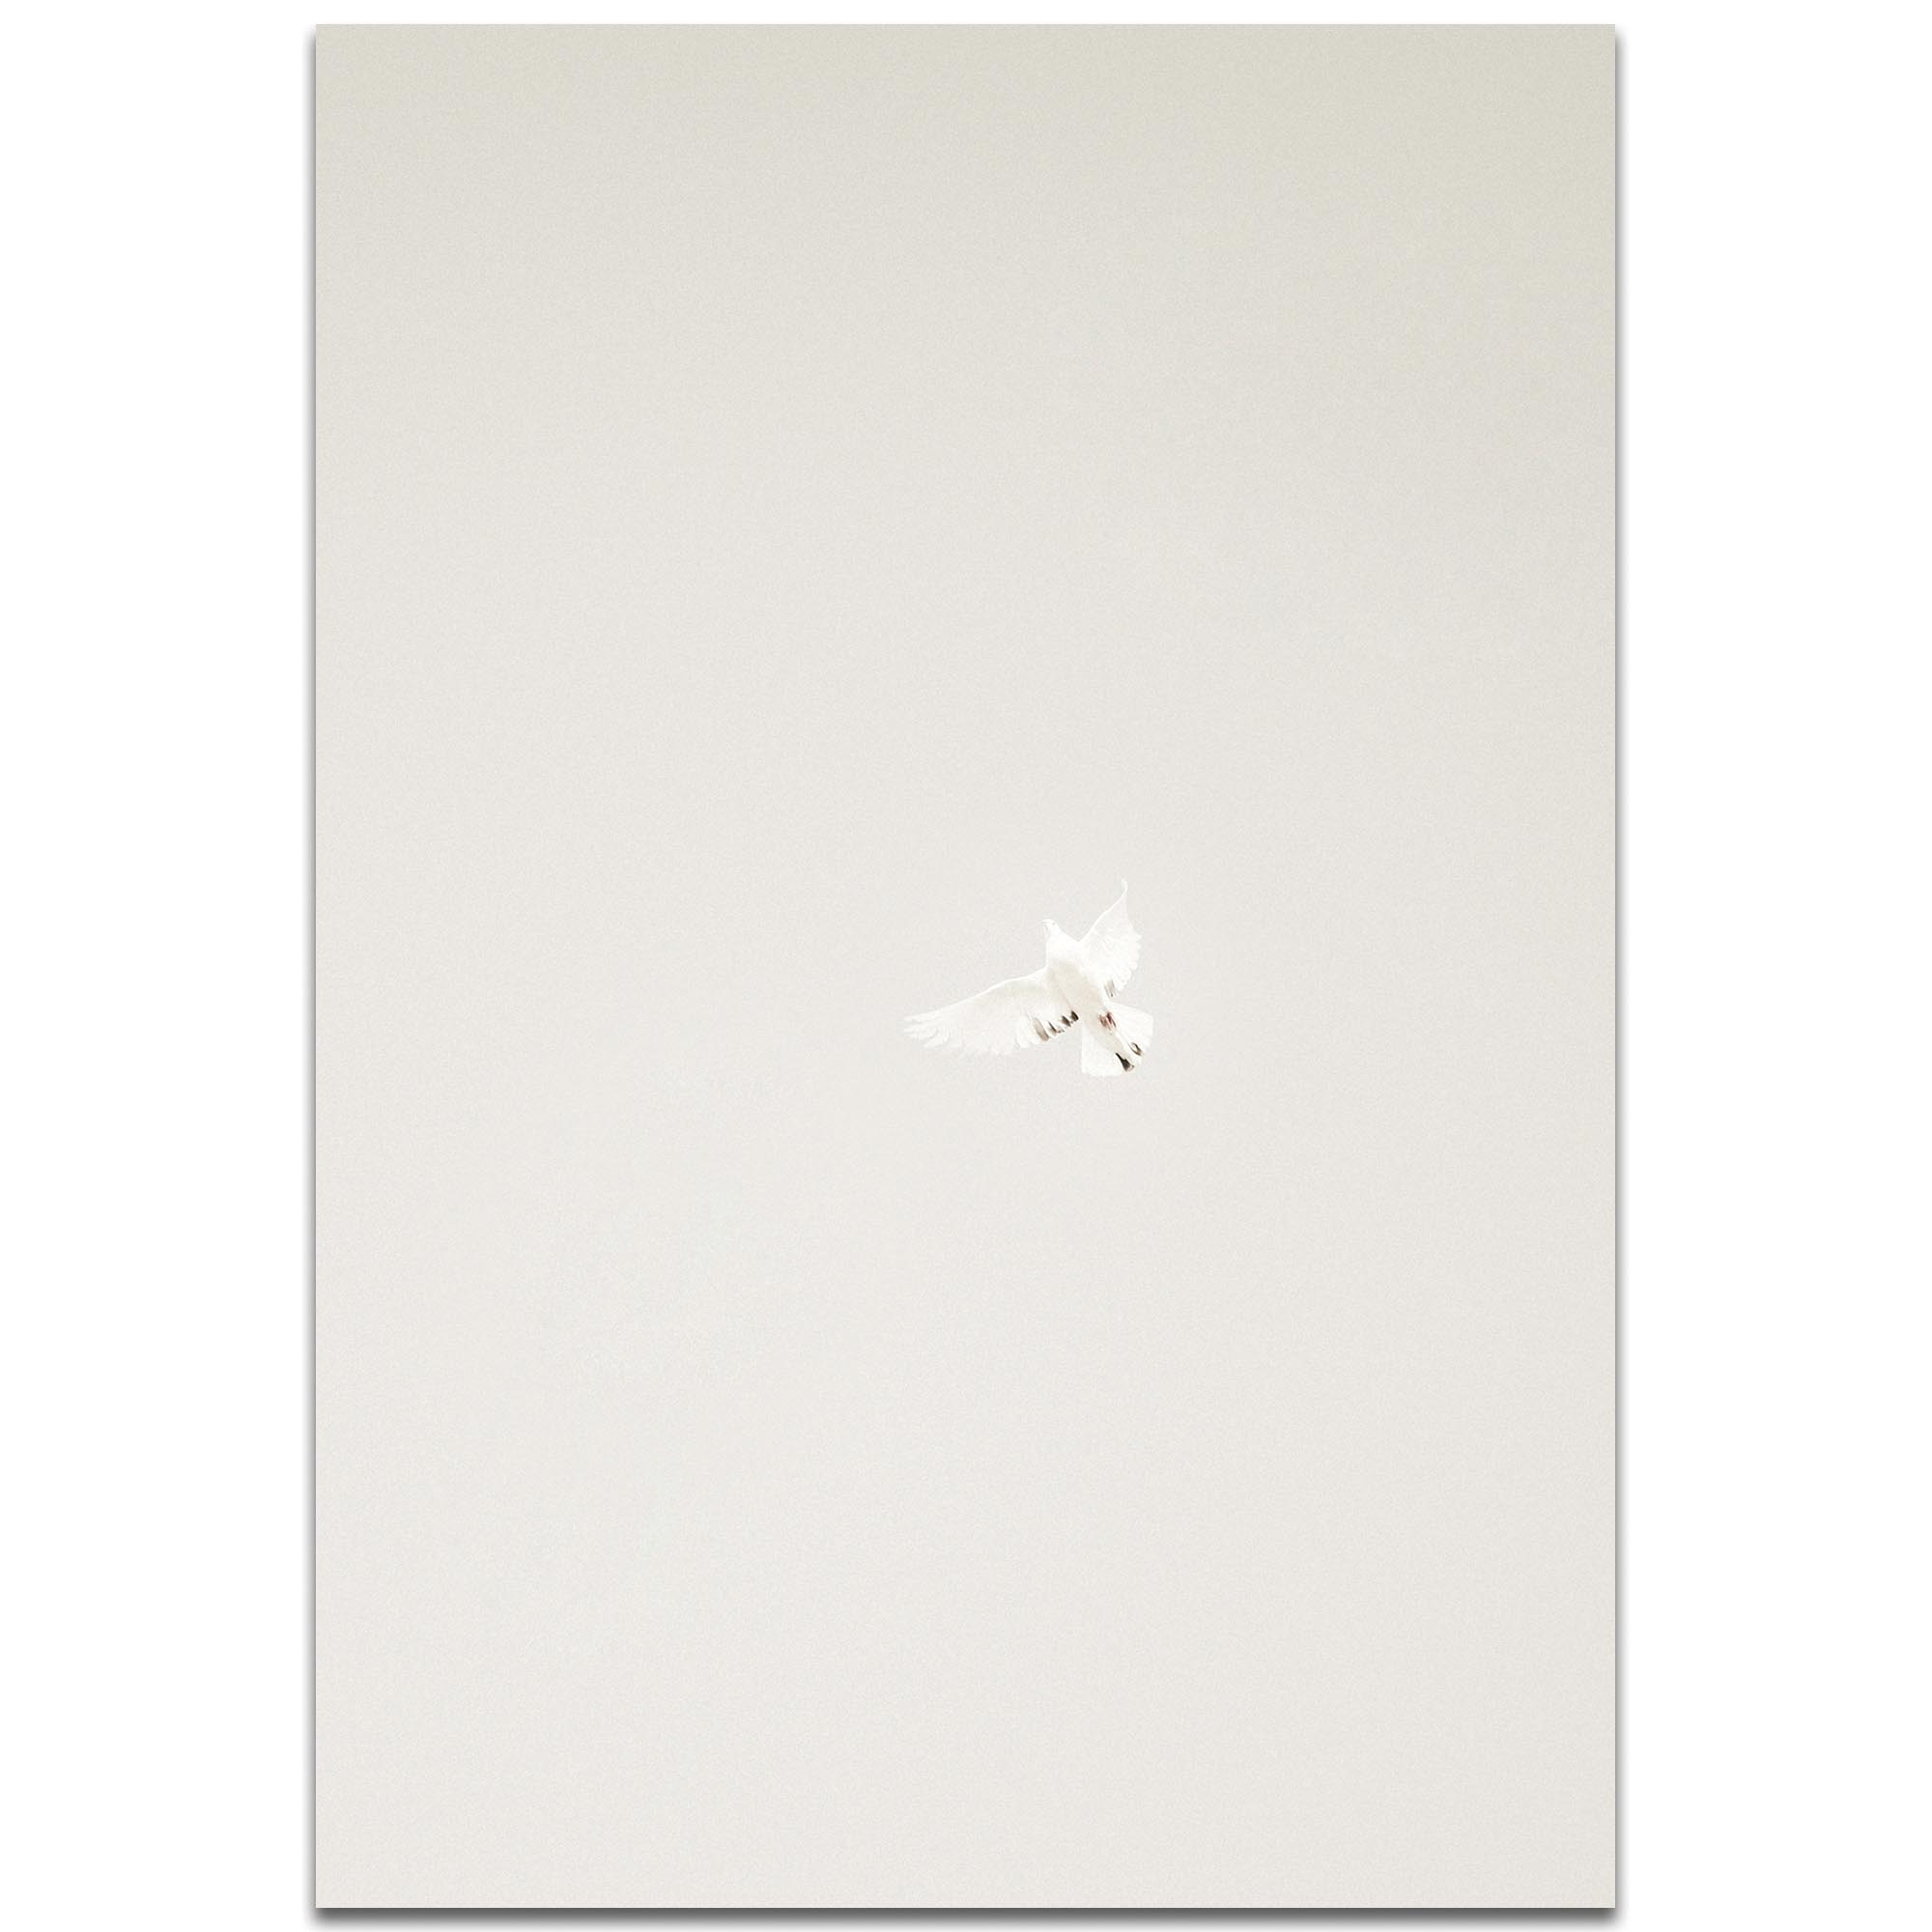 Minimalist Wall Art 'Flying Solo' - Wildlife Decor on Metal or Plexiglass